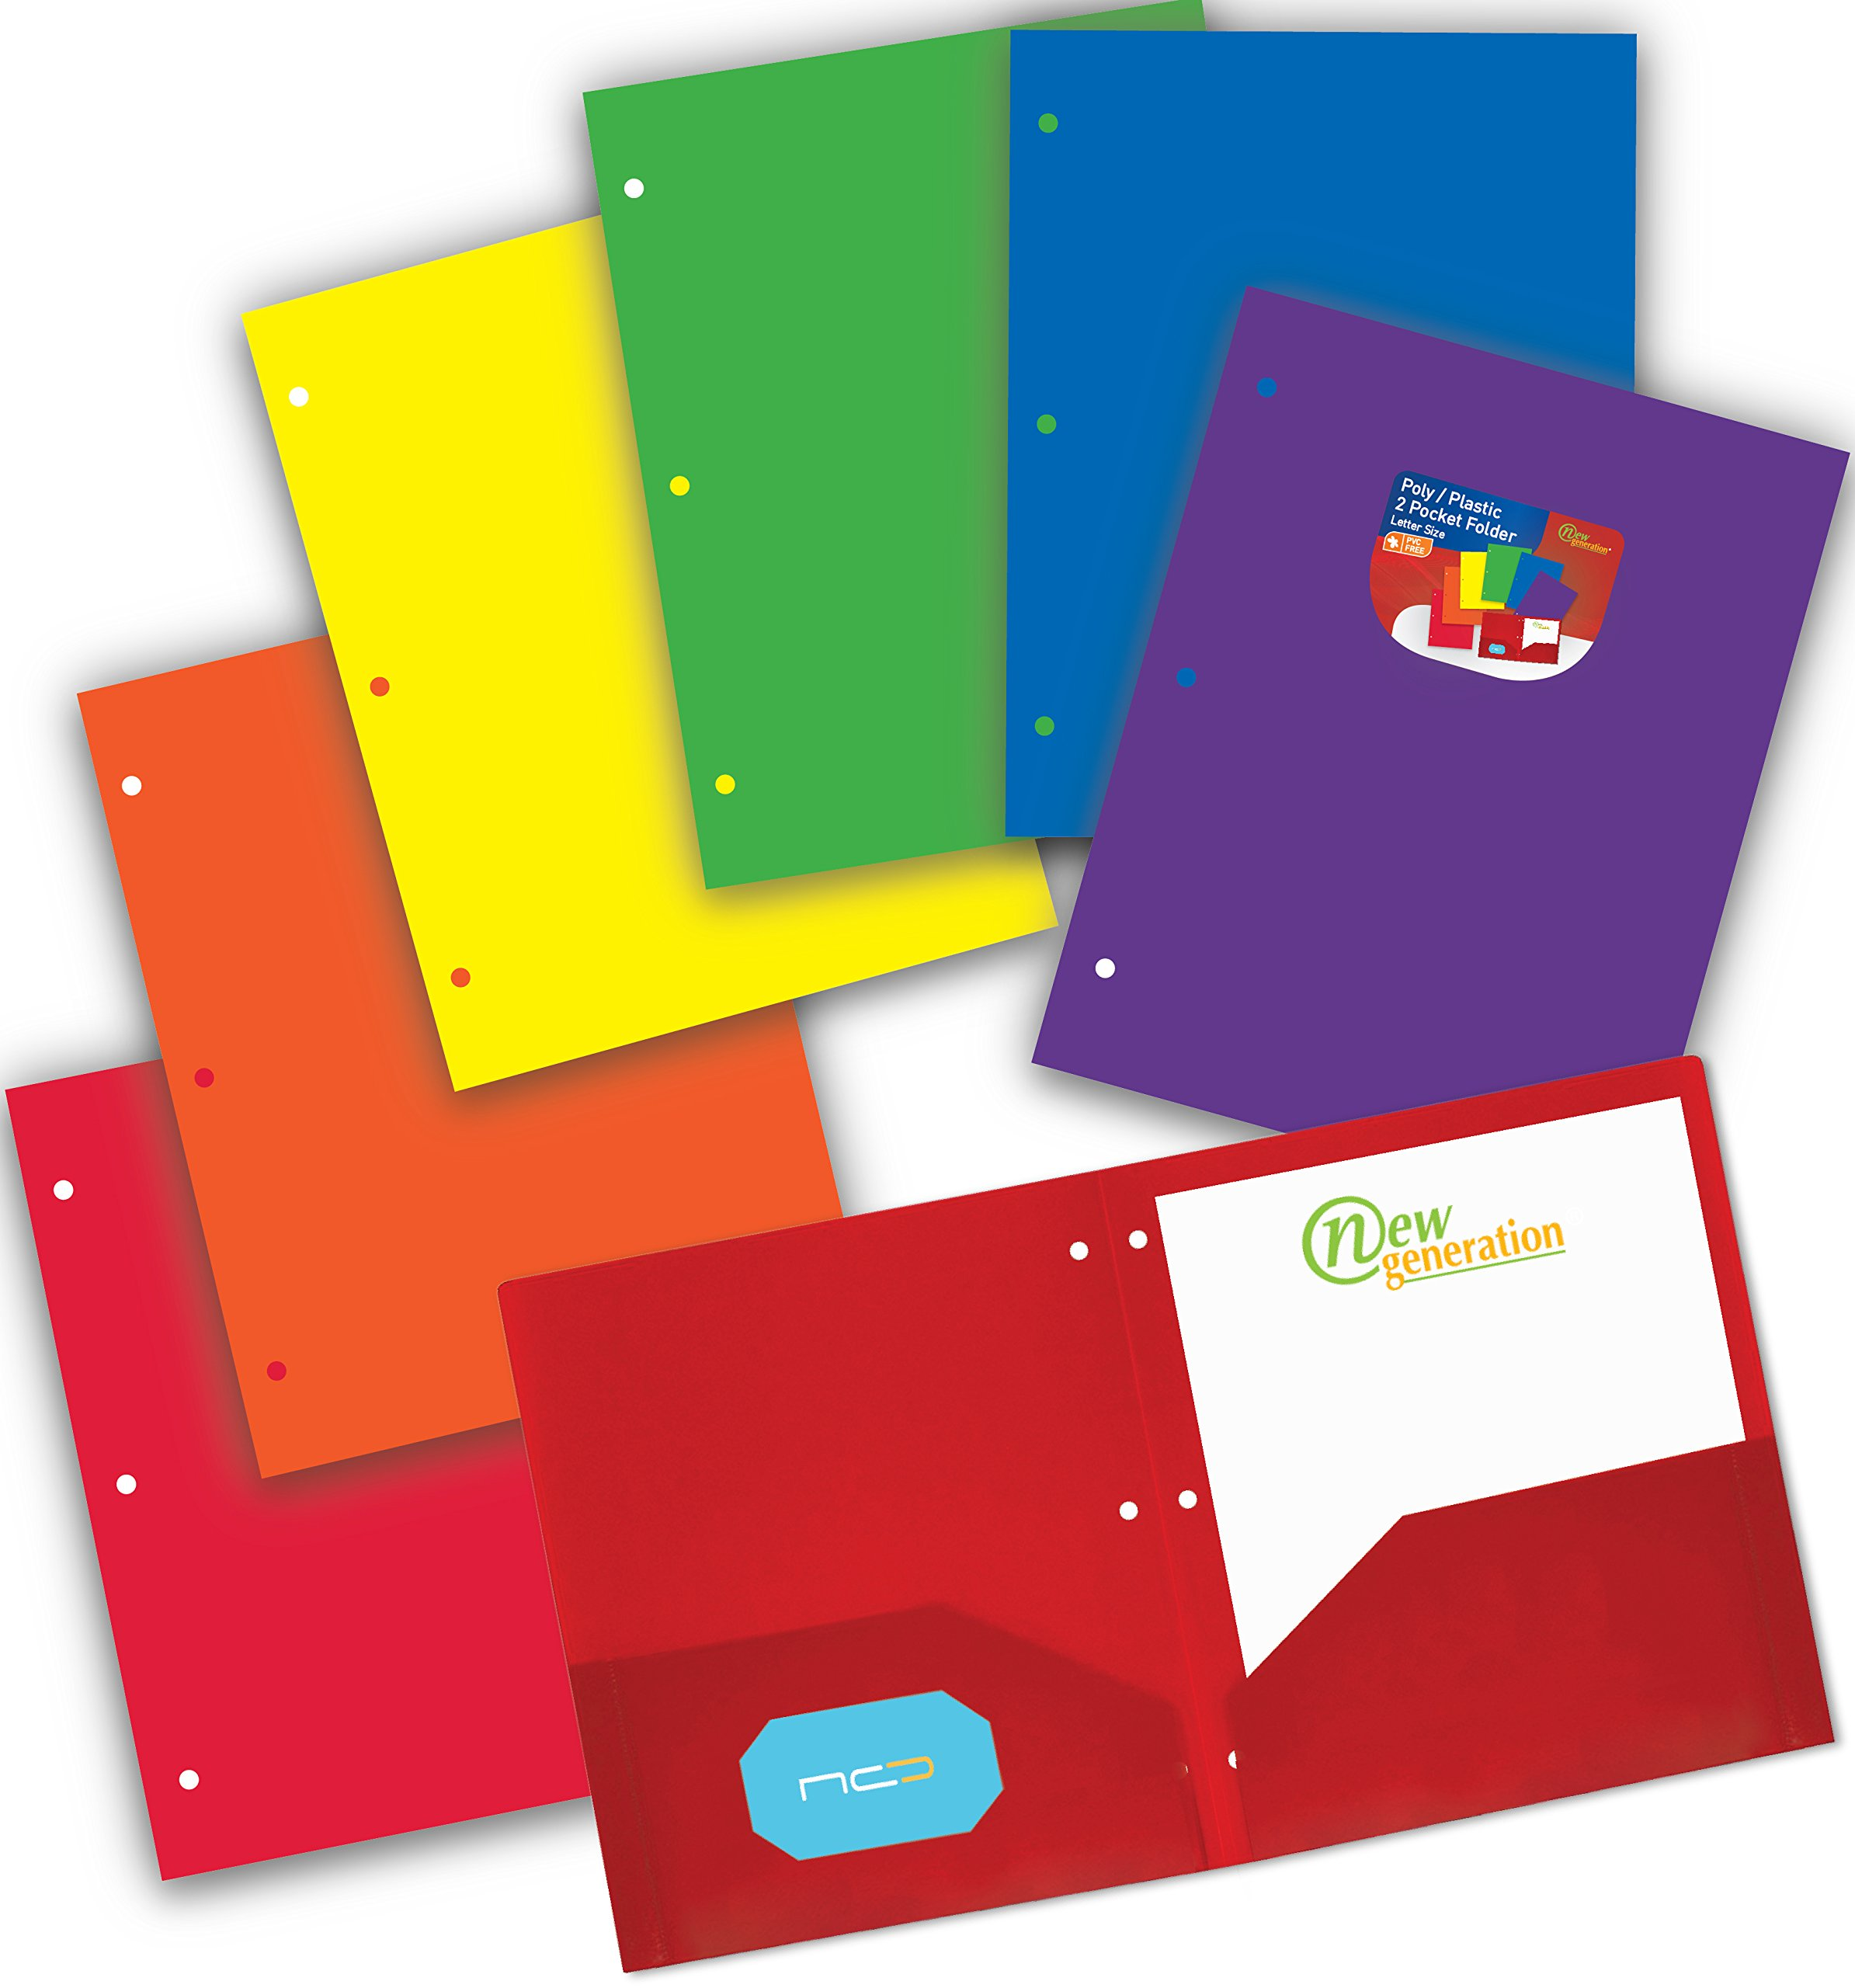 New Generation - ASSORTED FASHION COLORS - 3 HOLE PUNCHED 2 Pocket Poly/Plastic Folder, Heavy Duty Folders For Letter Size Papers, Includes Business Card Slot 6 PACK (6 PACK ASSORTED)